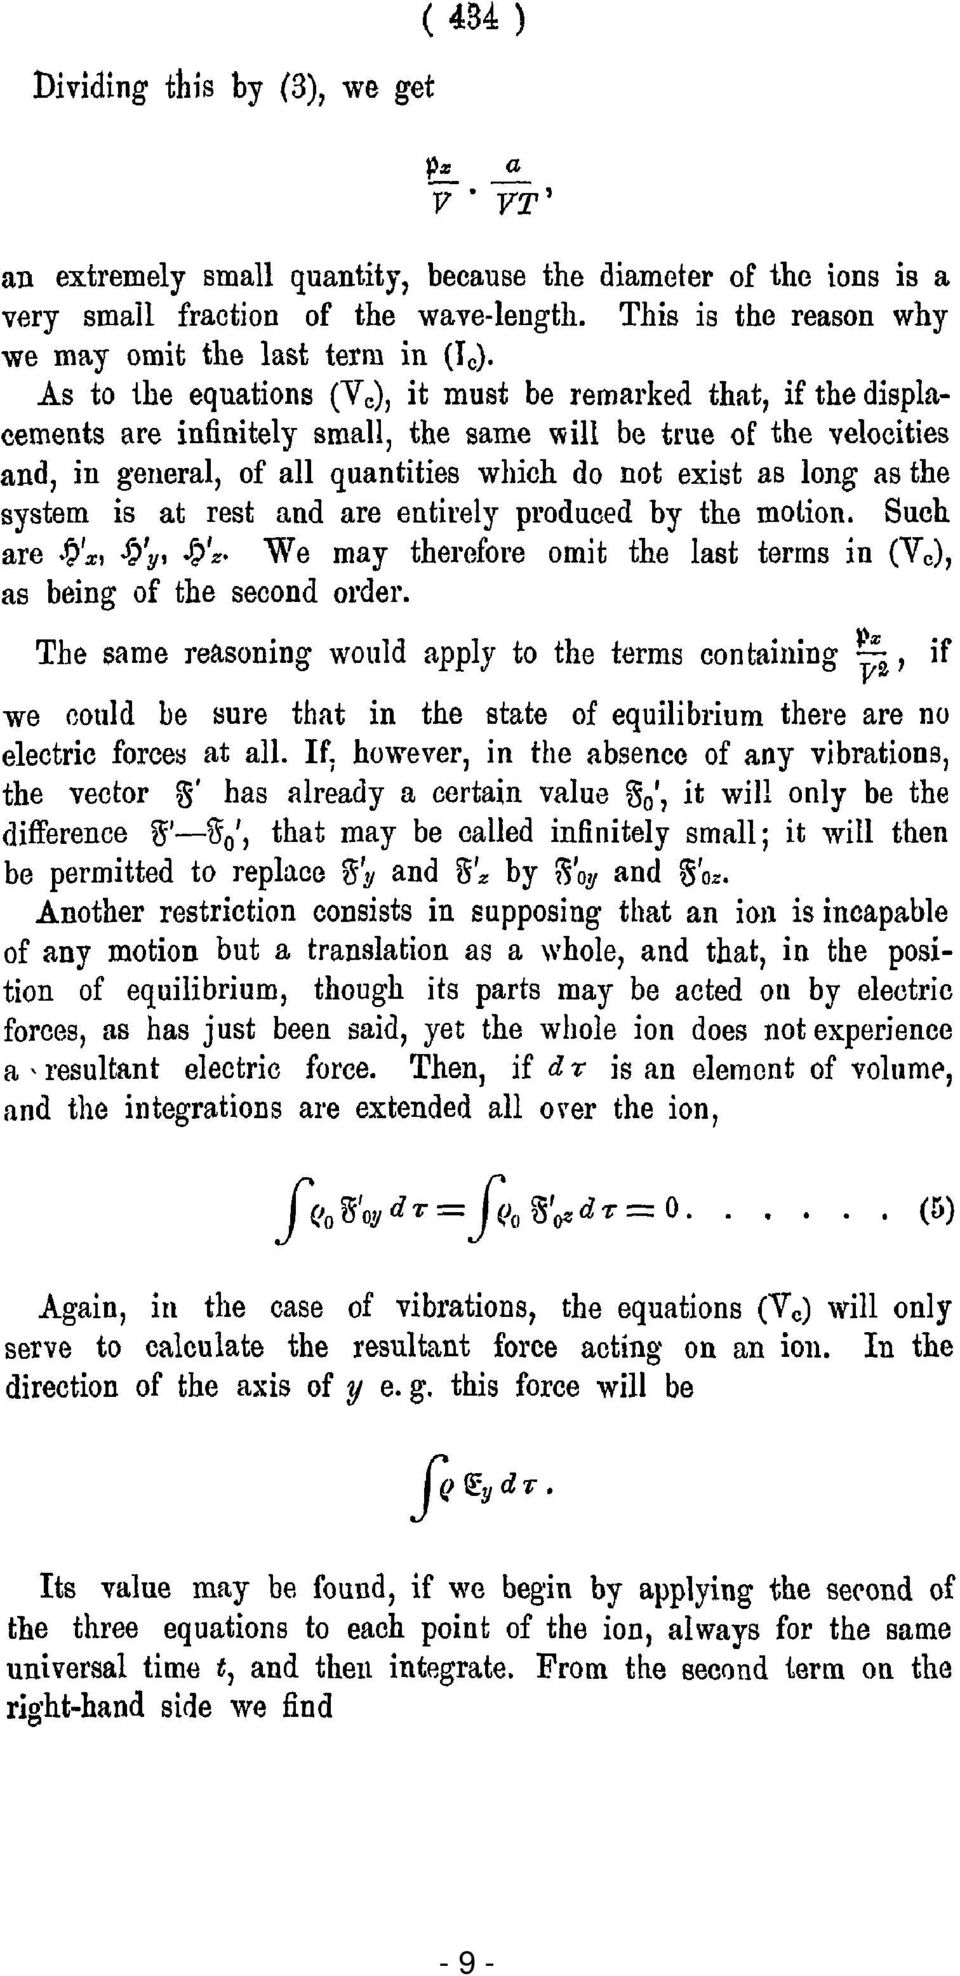 As to the equations CVe), it must be remarked that, if the displacements are infinitely smail, the same will be true of the veloeities and, in general, of all quantities which do not exist as long as